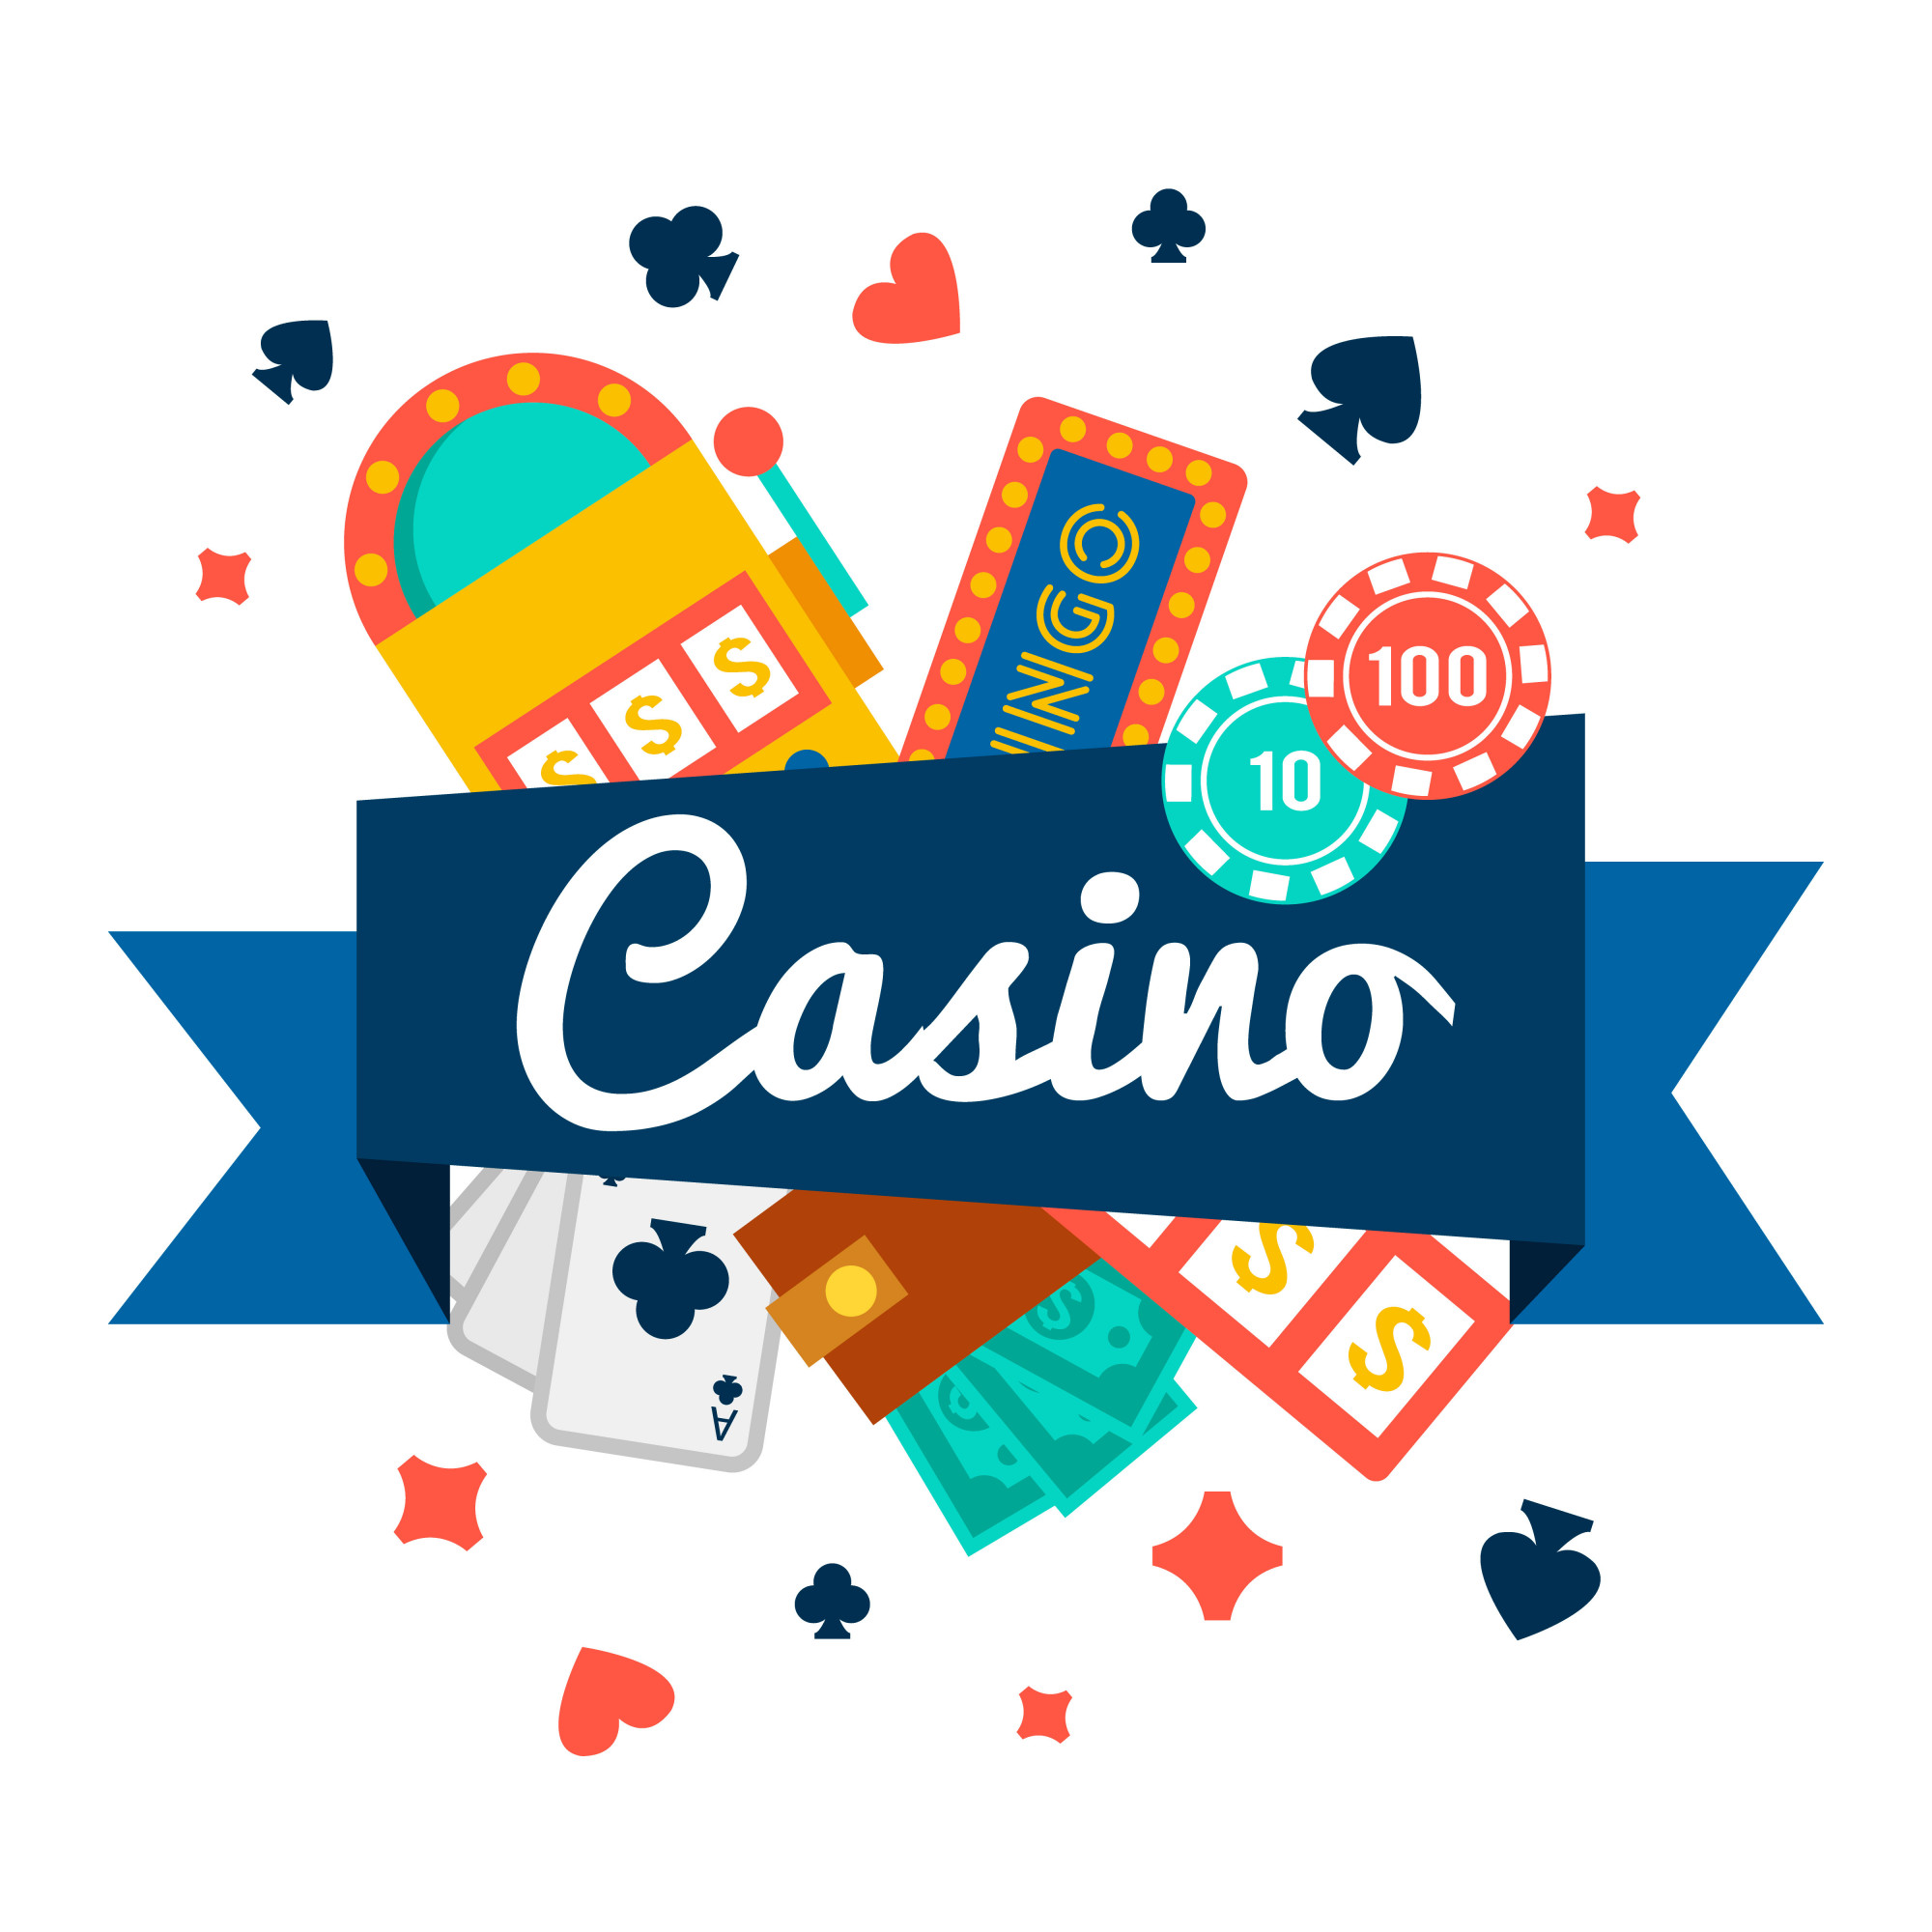 Casino wallpaper with poker elements